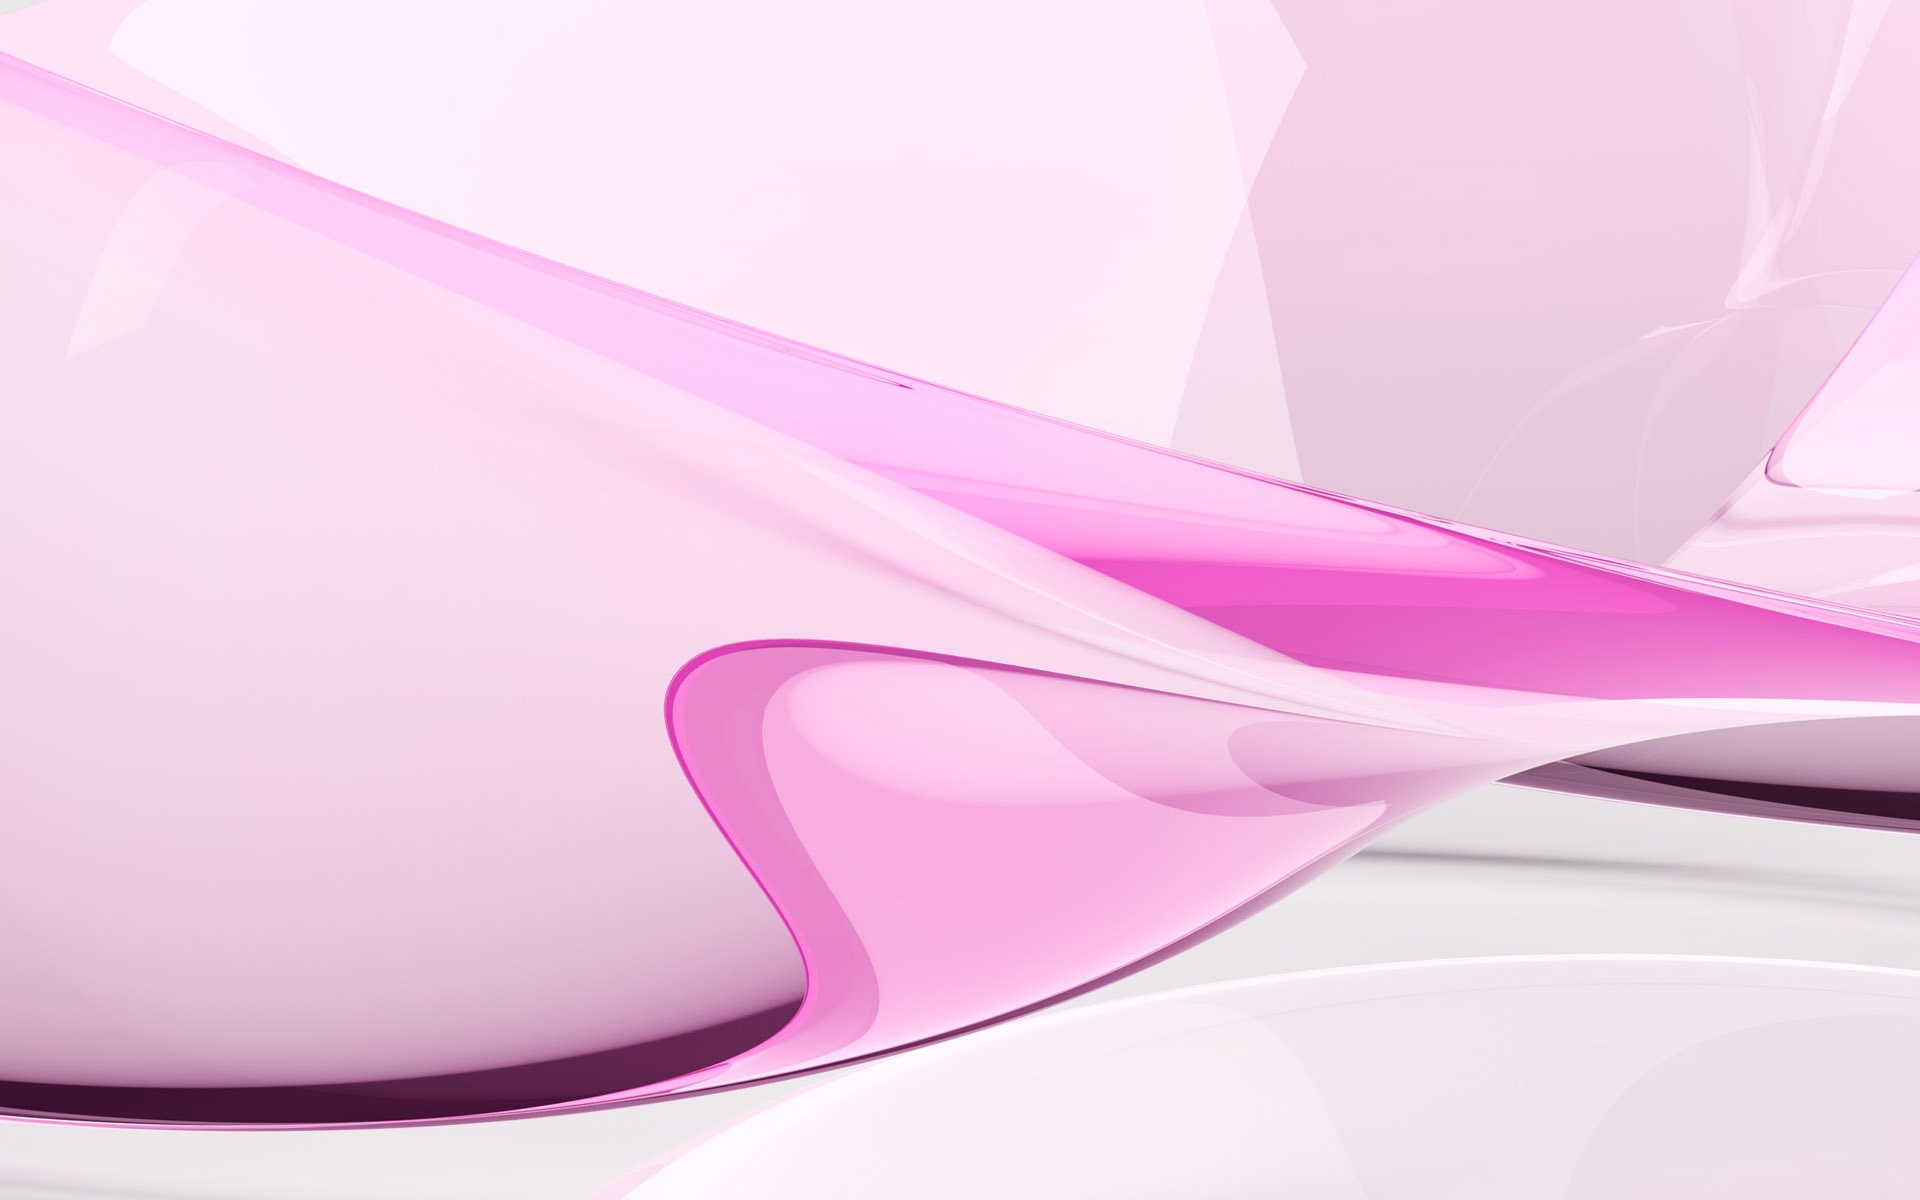 Pink Abstract Designs Wallpapers HD Wallpapers 1920x1200